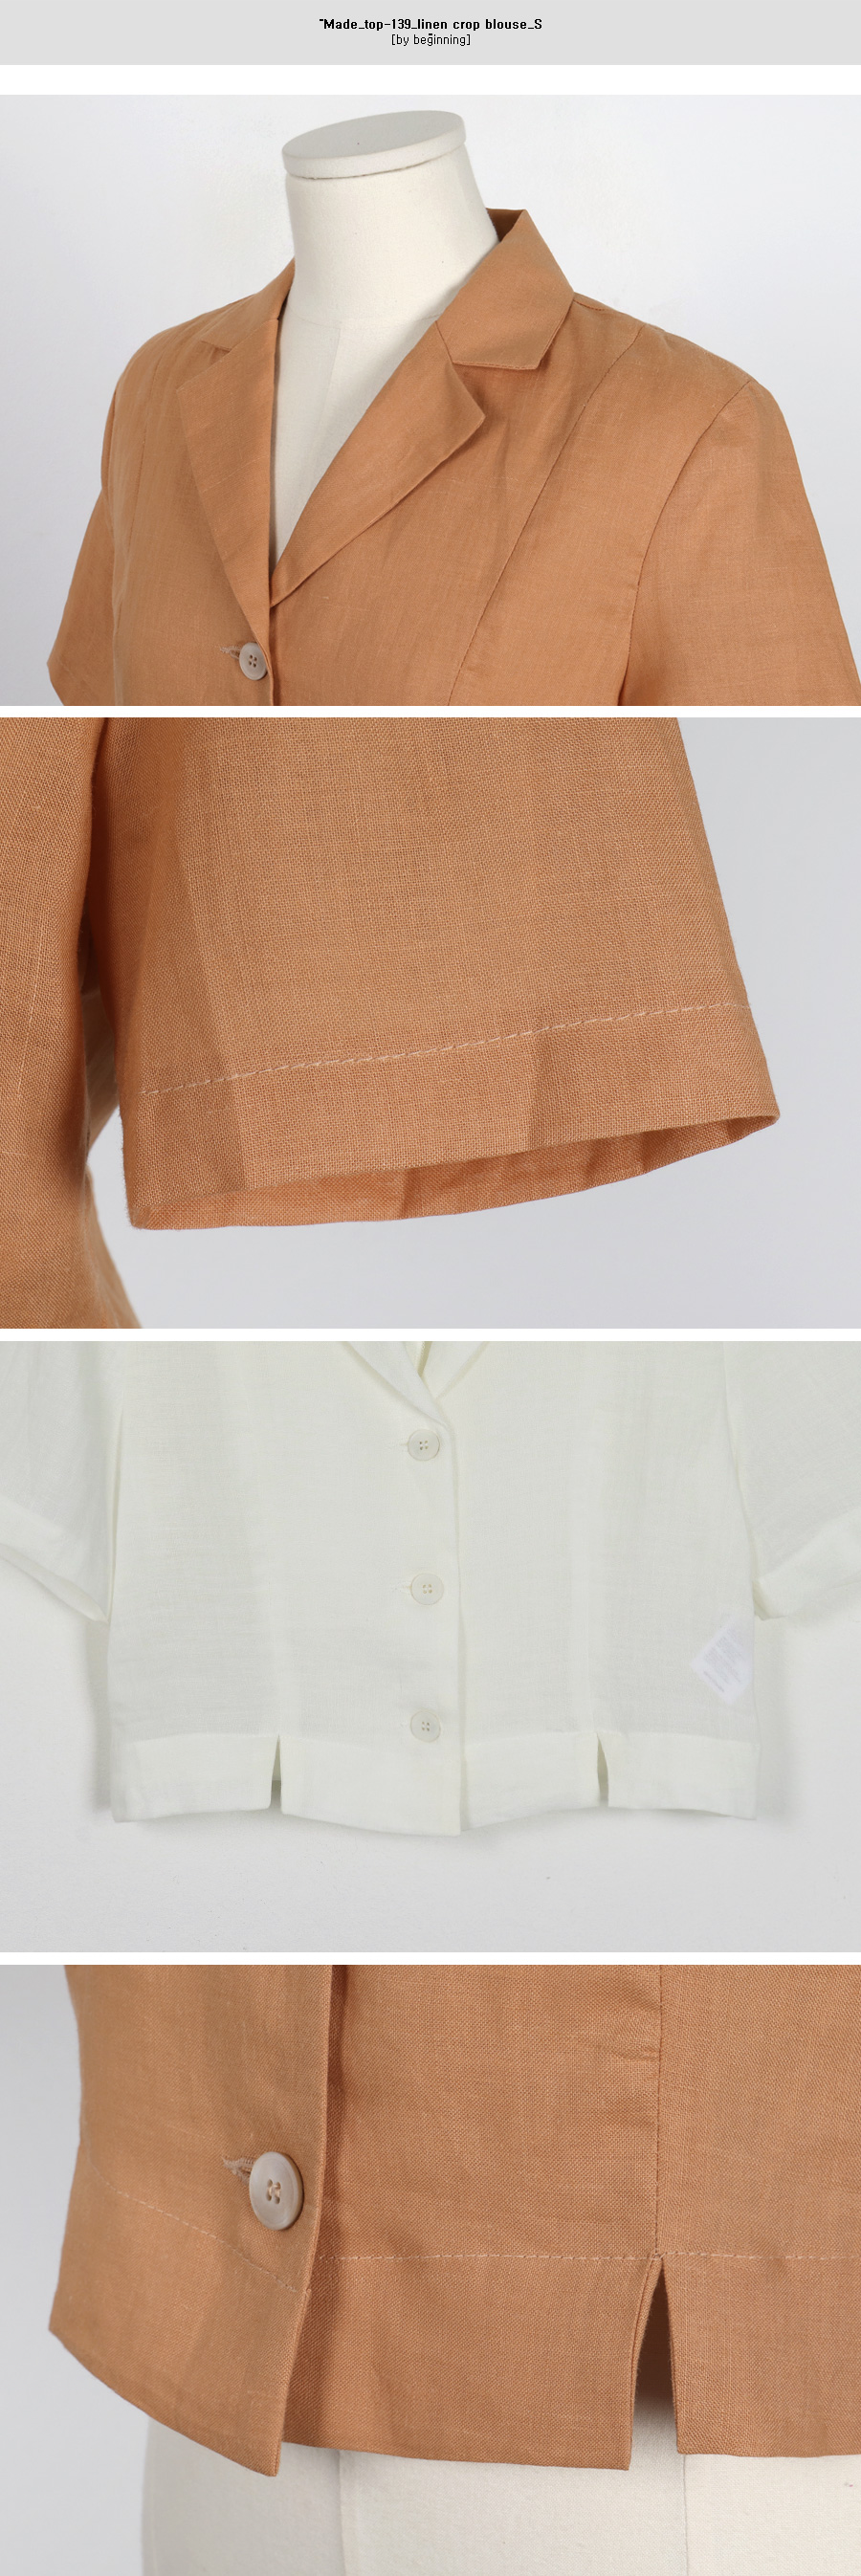 Made_top-139_linen crop blouse_S (size : free)